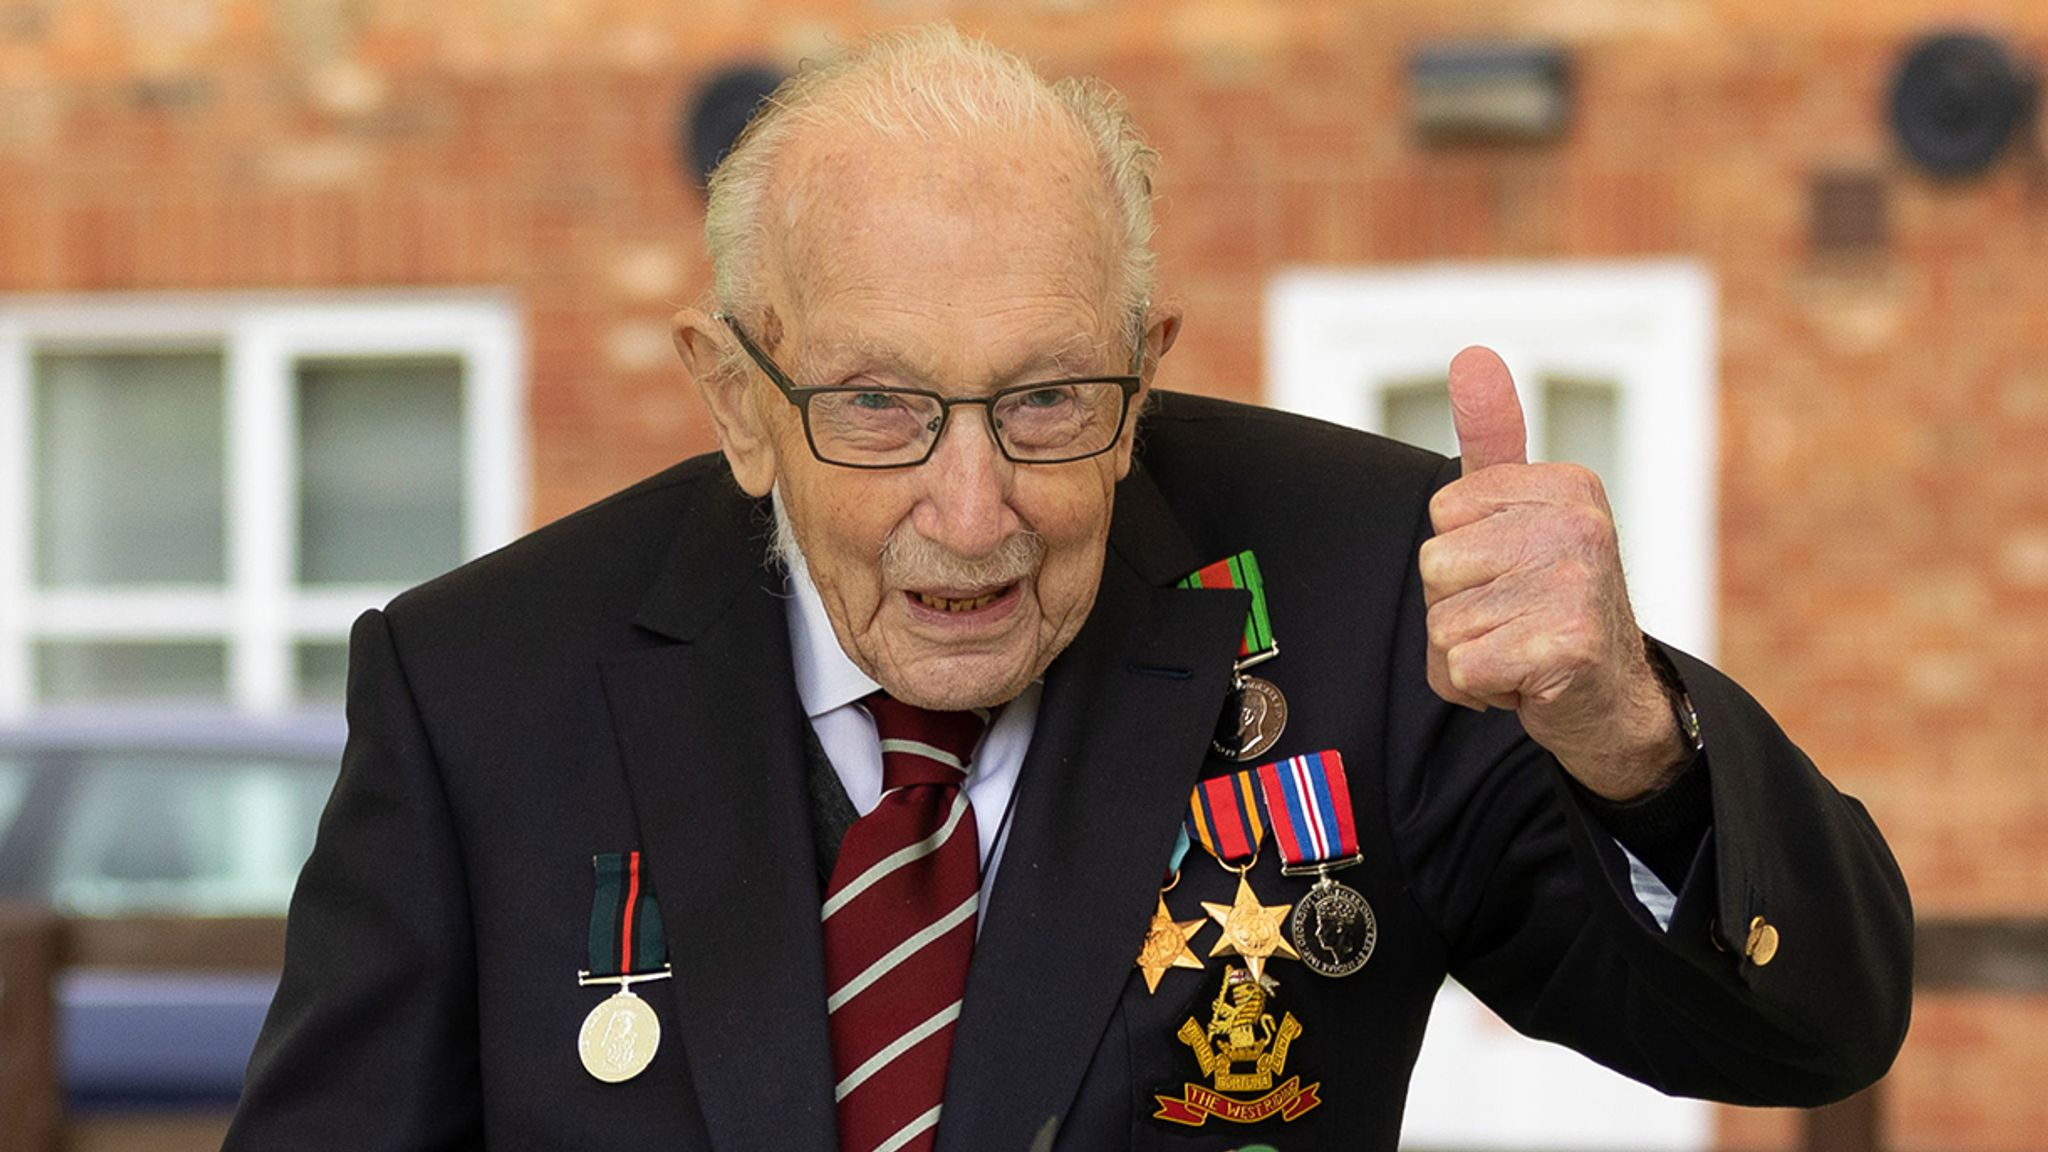 Coronavirus: Captain Tom Moore to be knighted after raising £33m ...